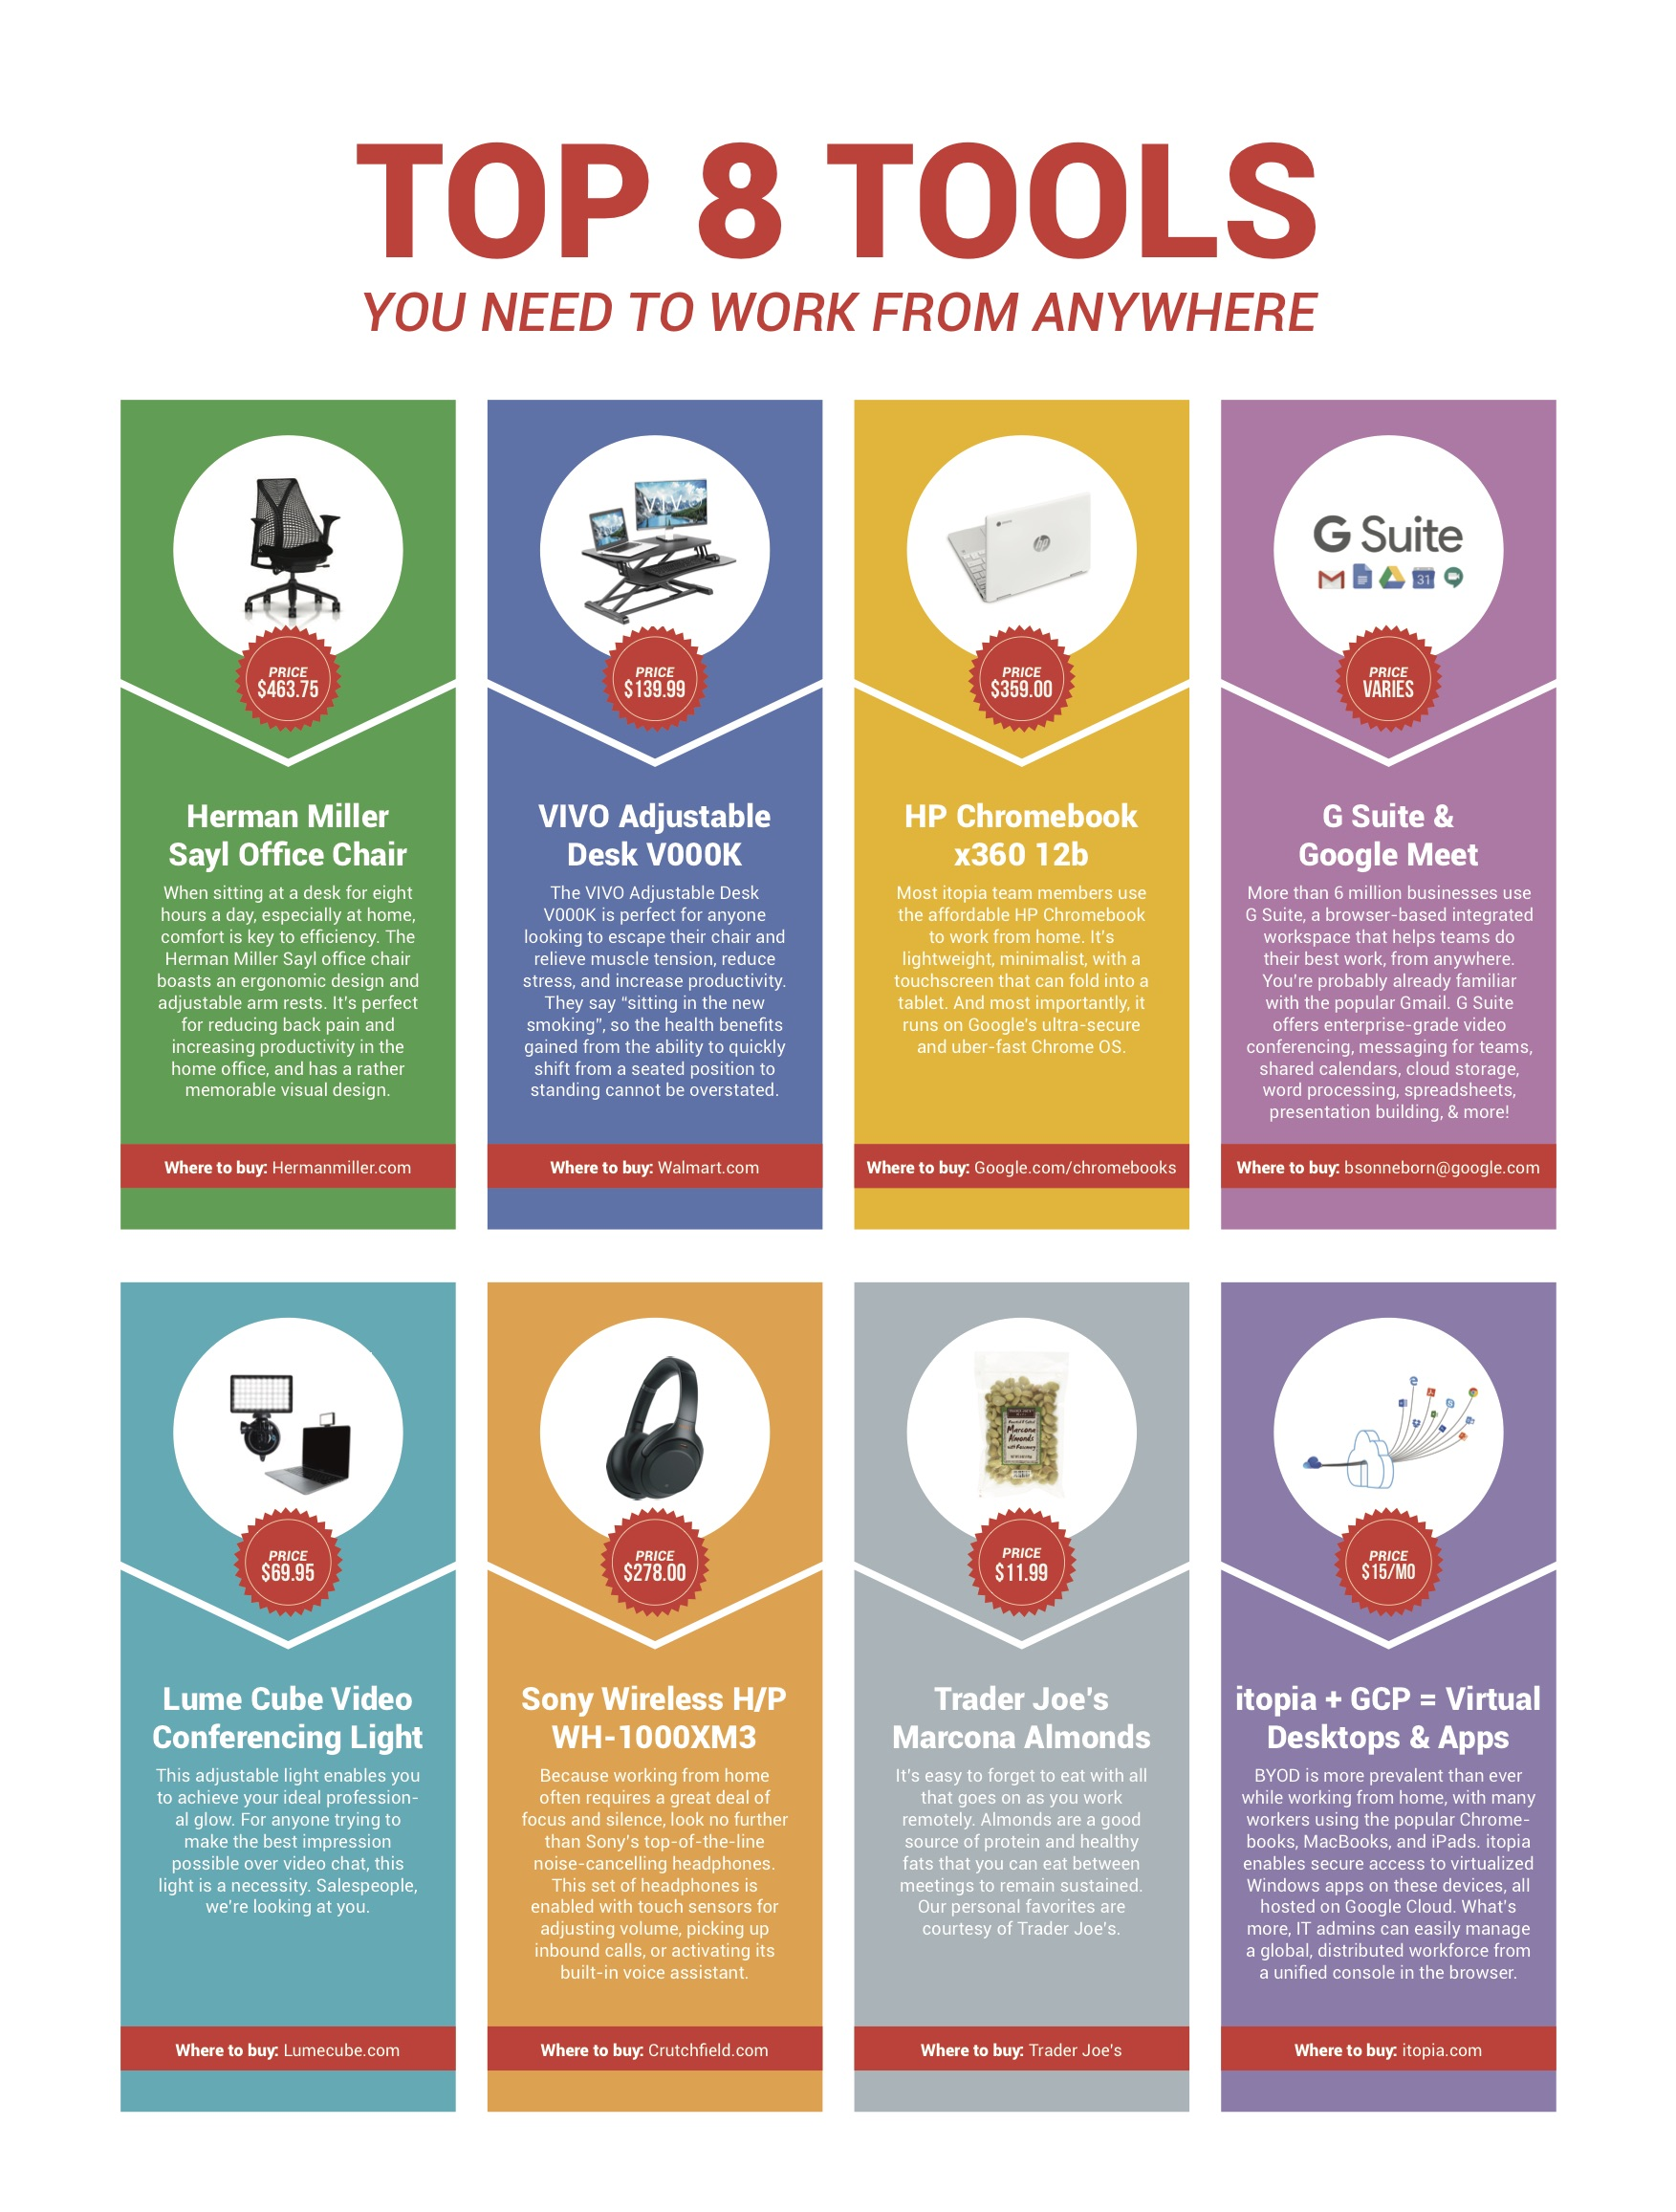 Top 8 Tools Infographic